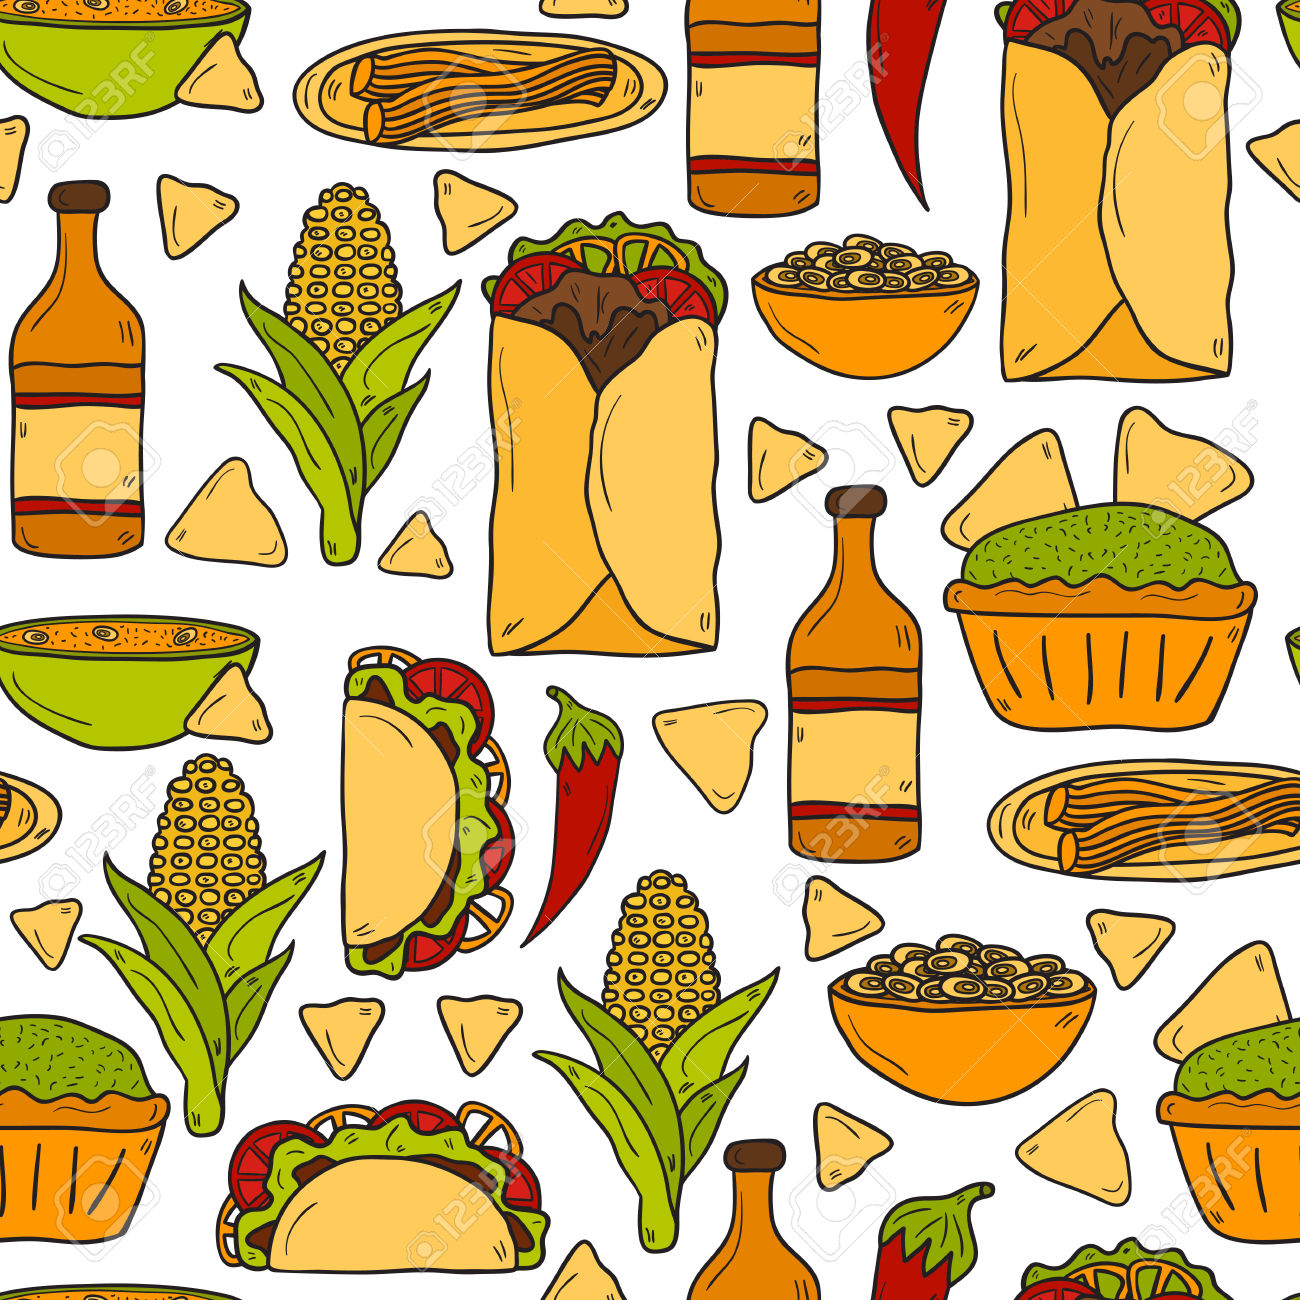 Mexican rice food clipart.